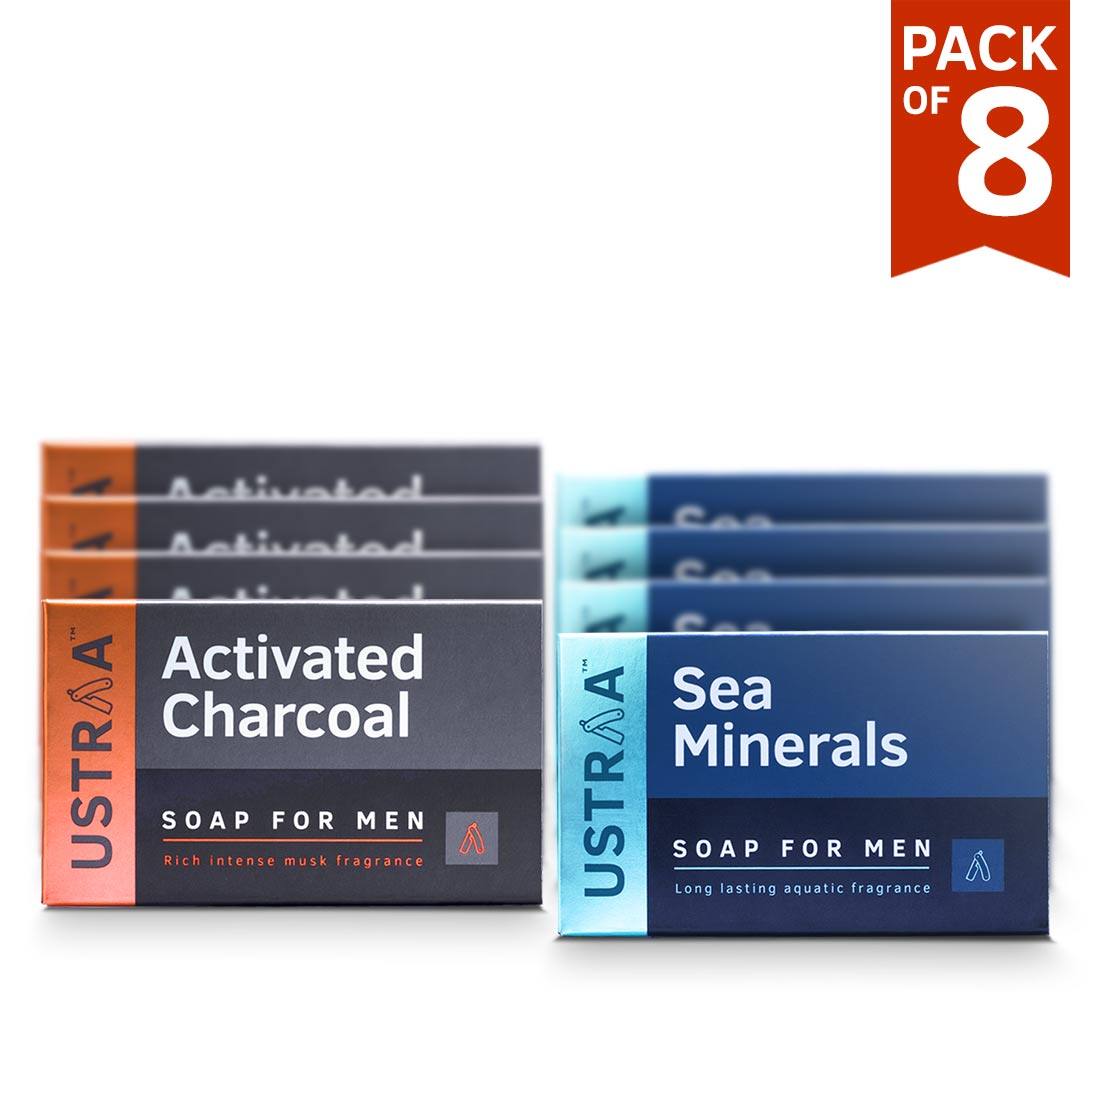 Ustraa Deo Soap for Men with Sea Minerals & Activated Charcoal, 100 g (Pack of 8)